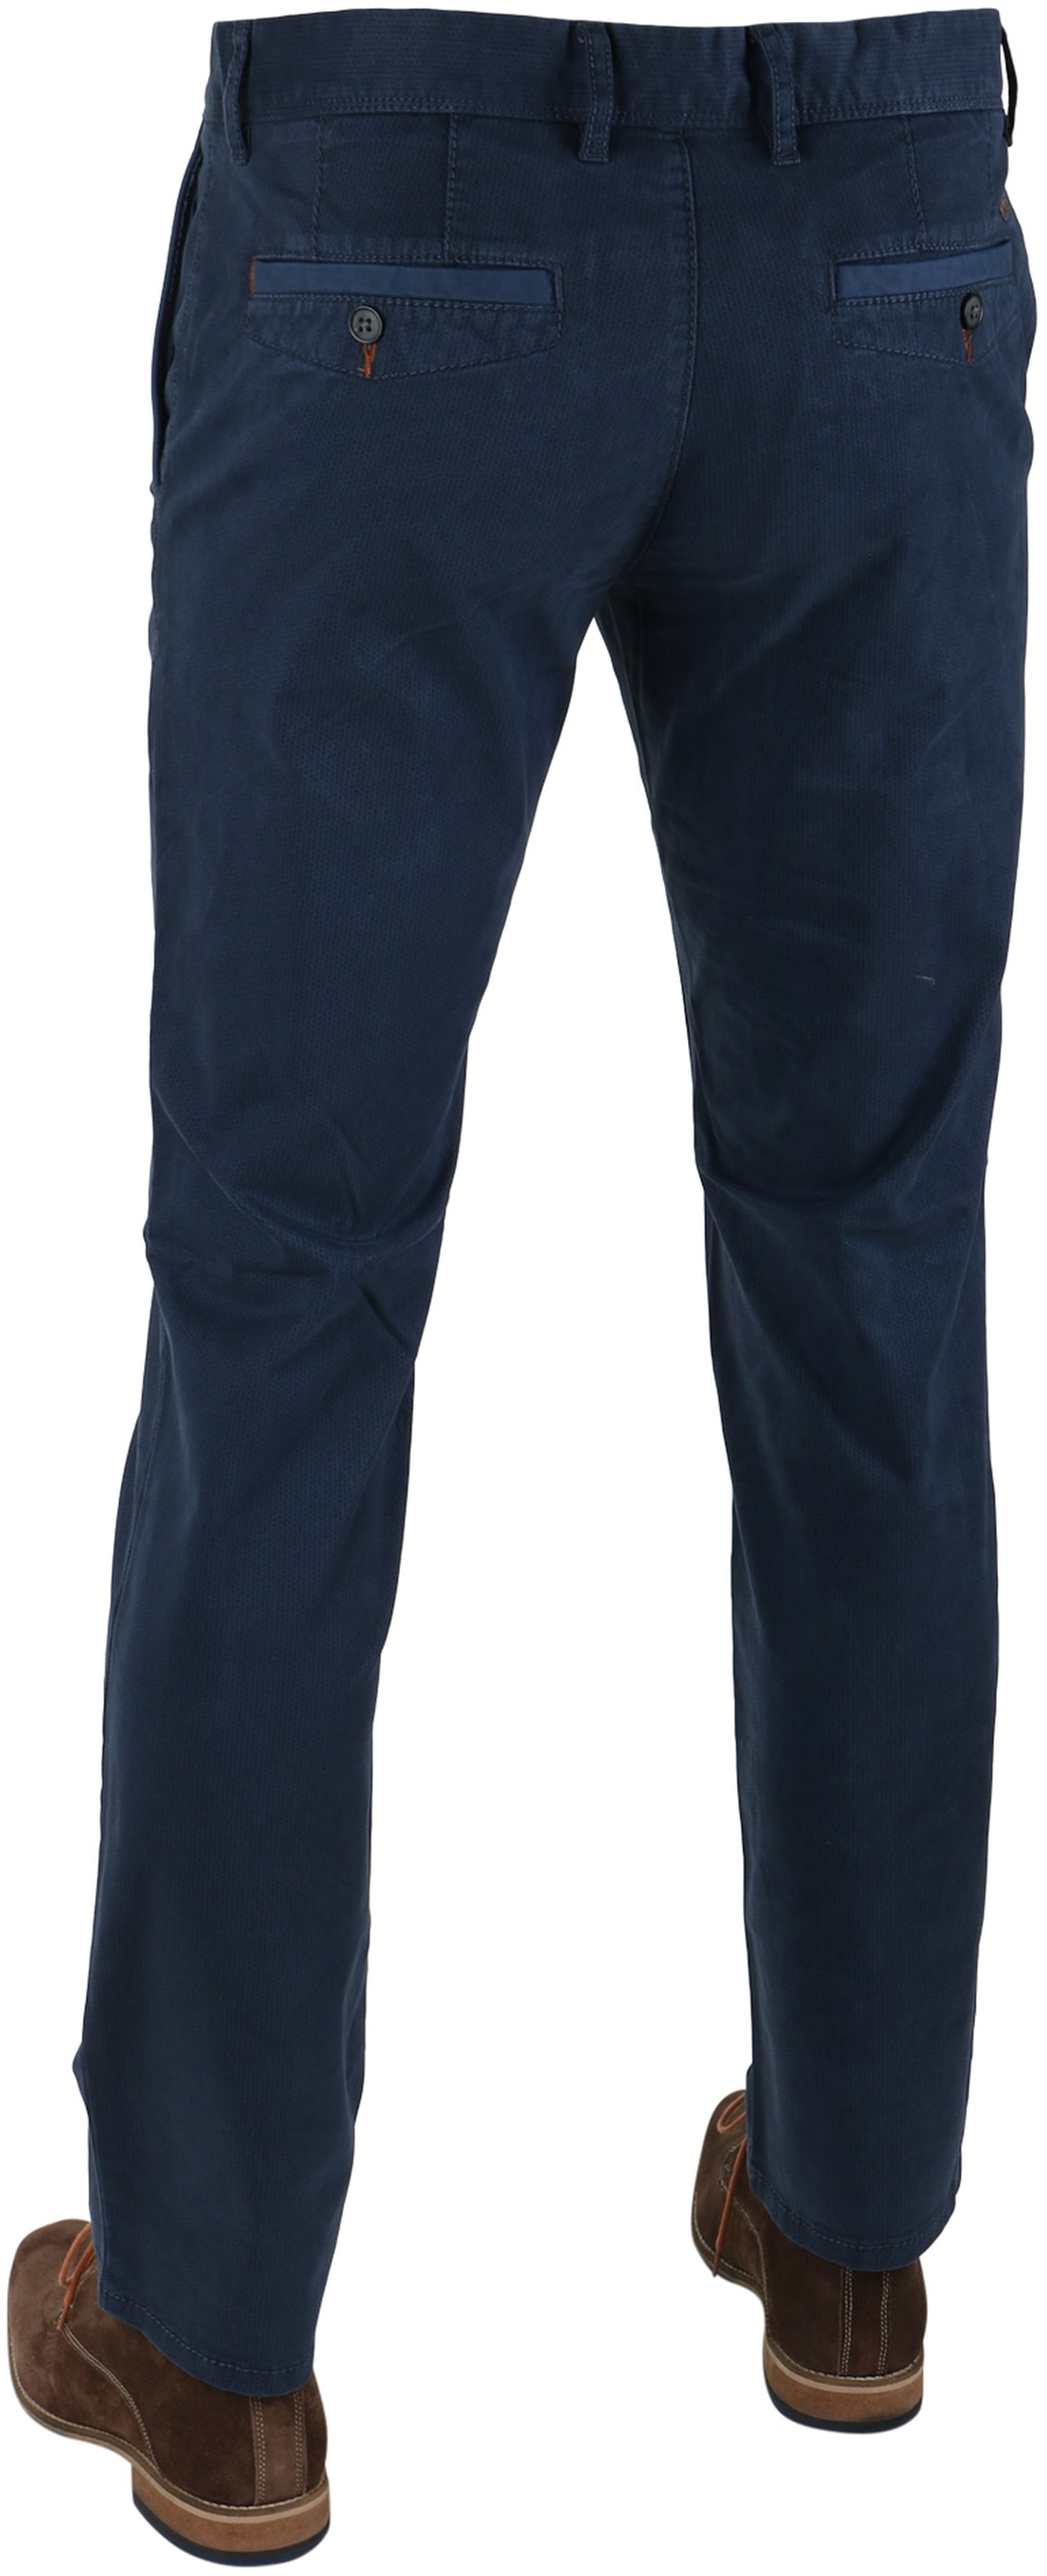 Suitable Chino Oakville Donkerblauw Print foto 1